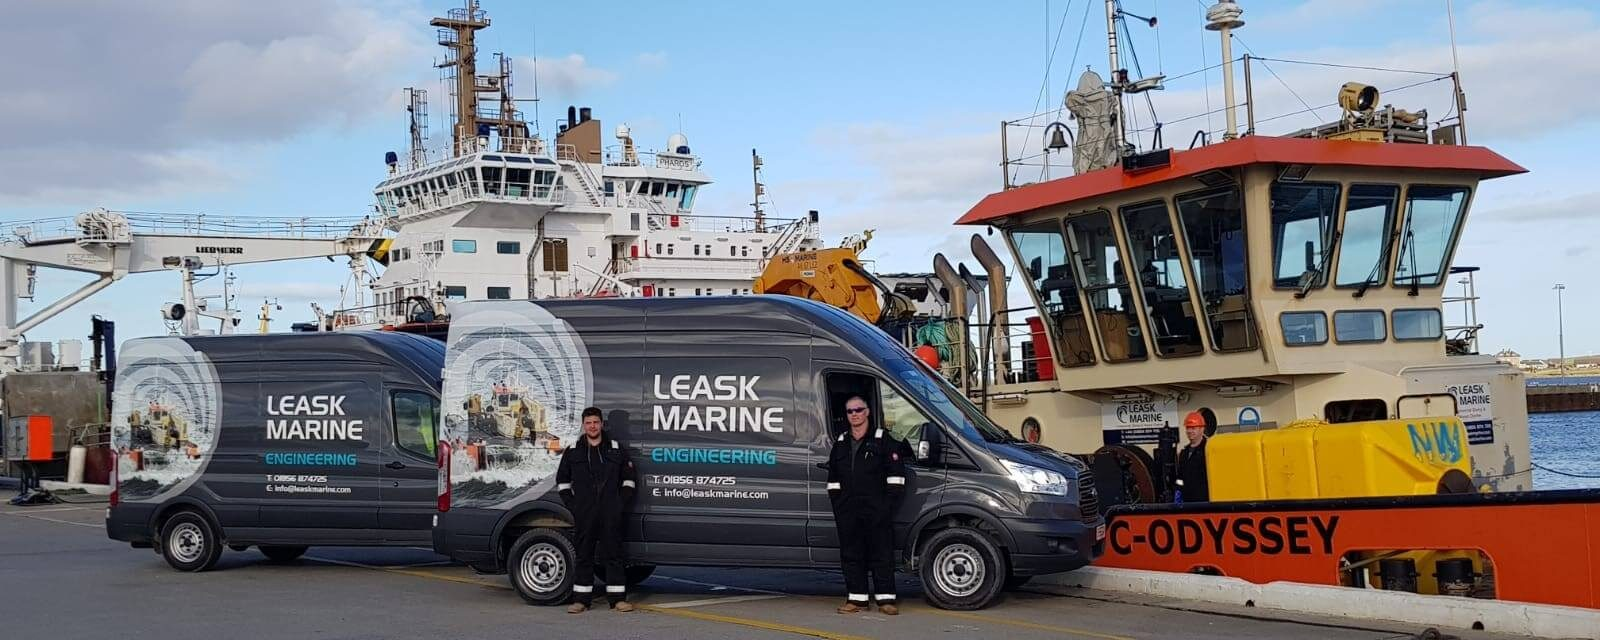 Leask Marine vans and C-Odyssey